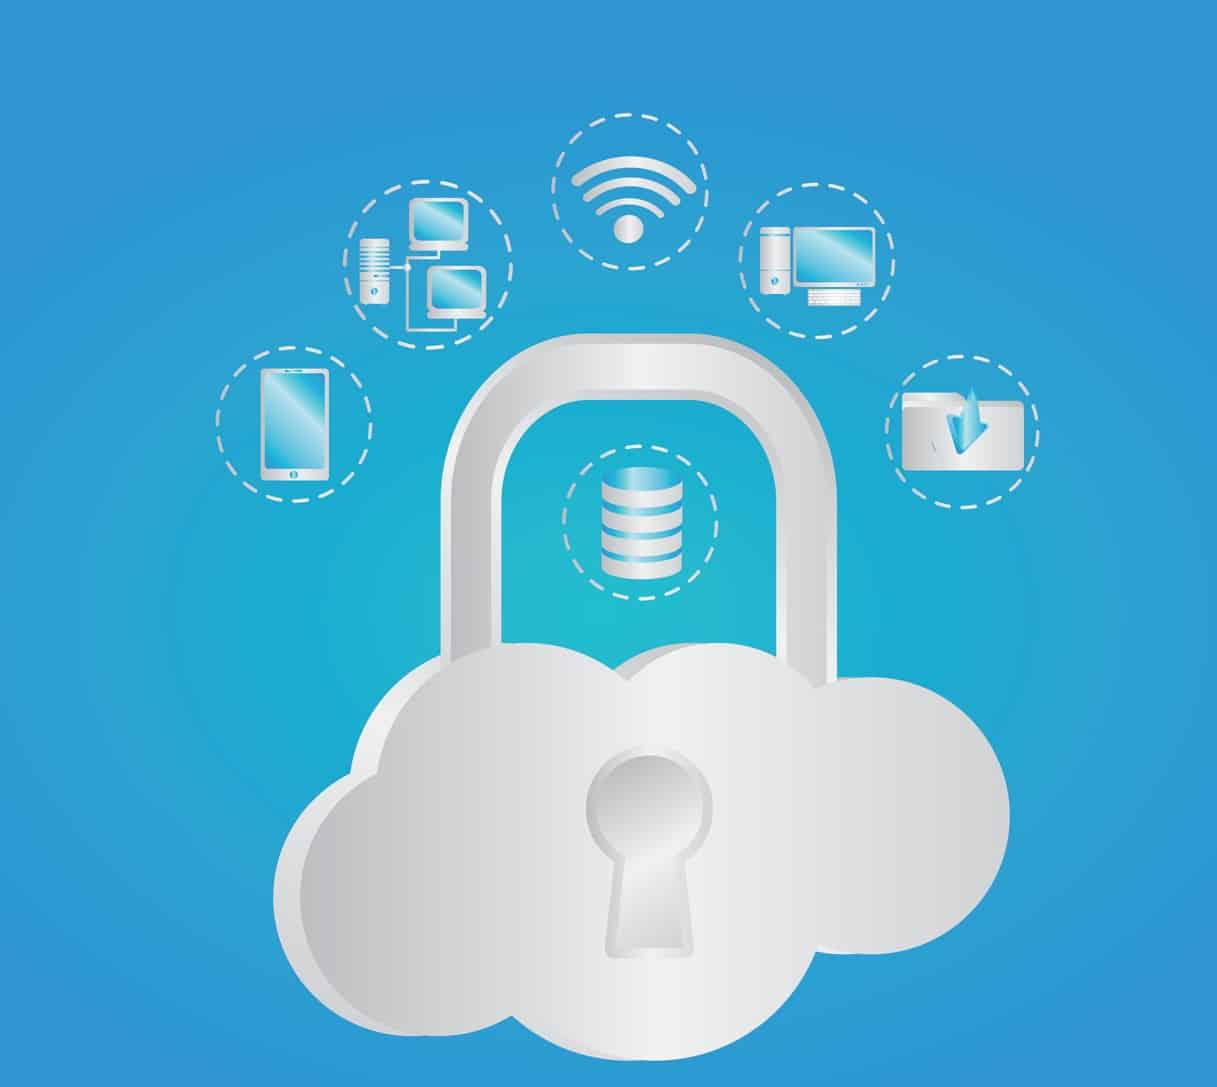 healthcare security, cloud computing protection, asset protection